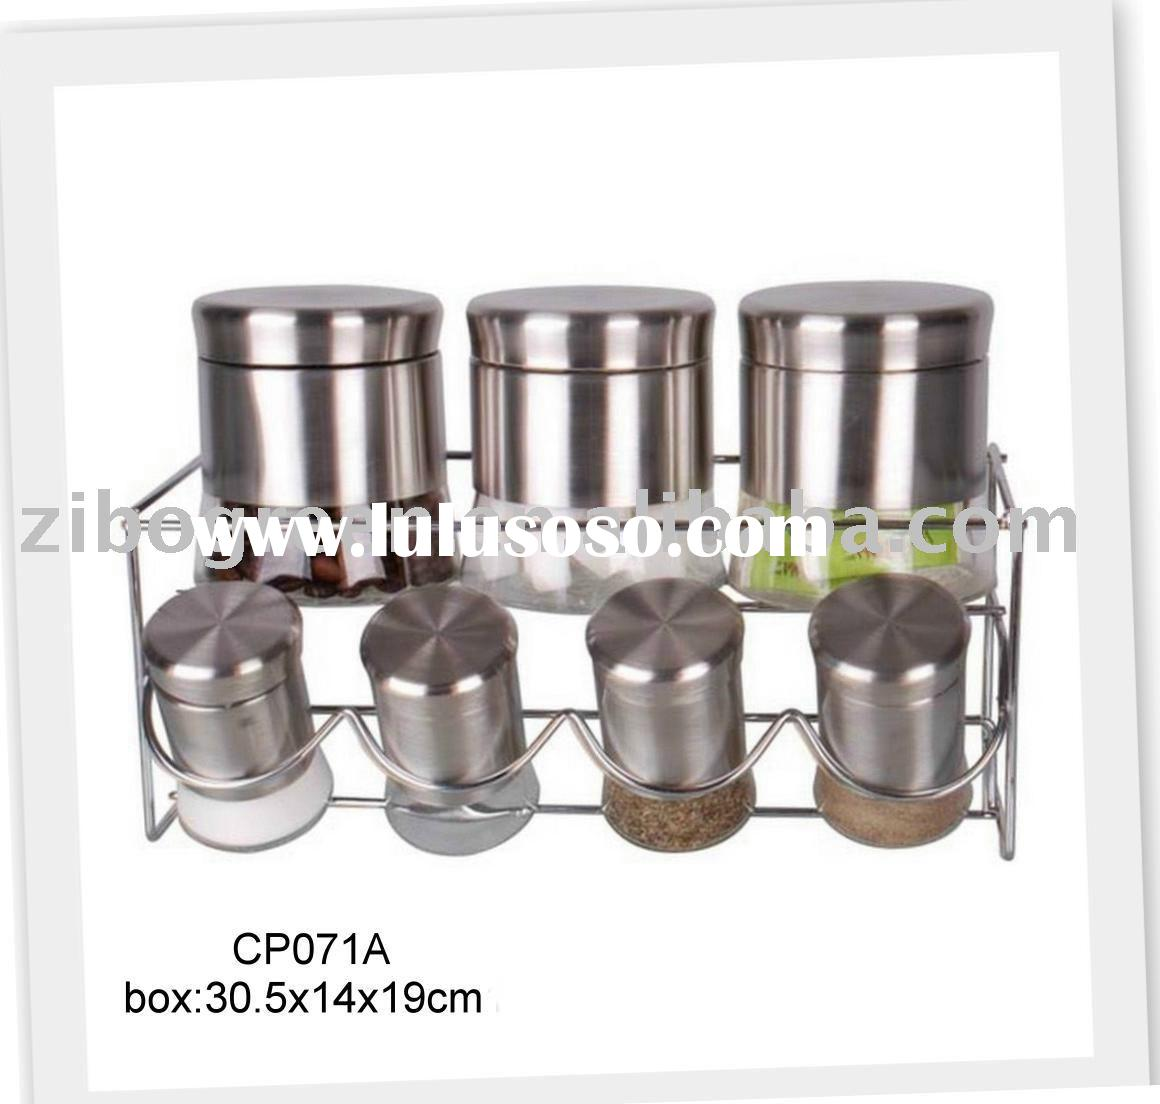 glass food storage jar with stainless steel casing with rack (CP071A)